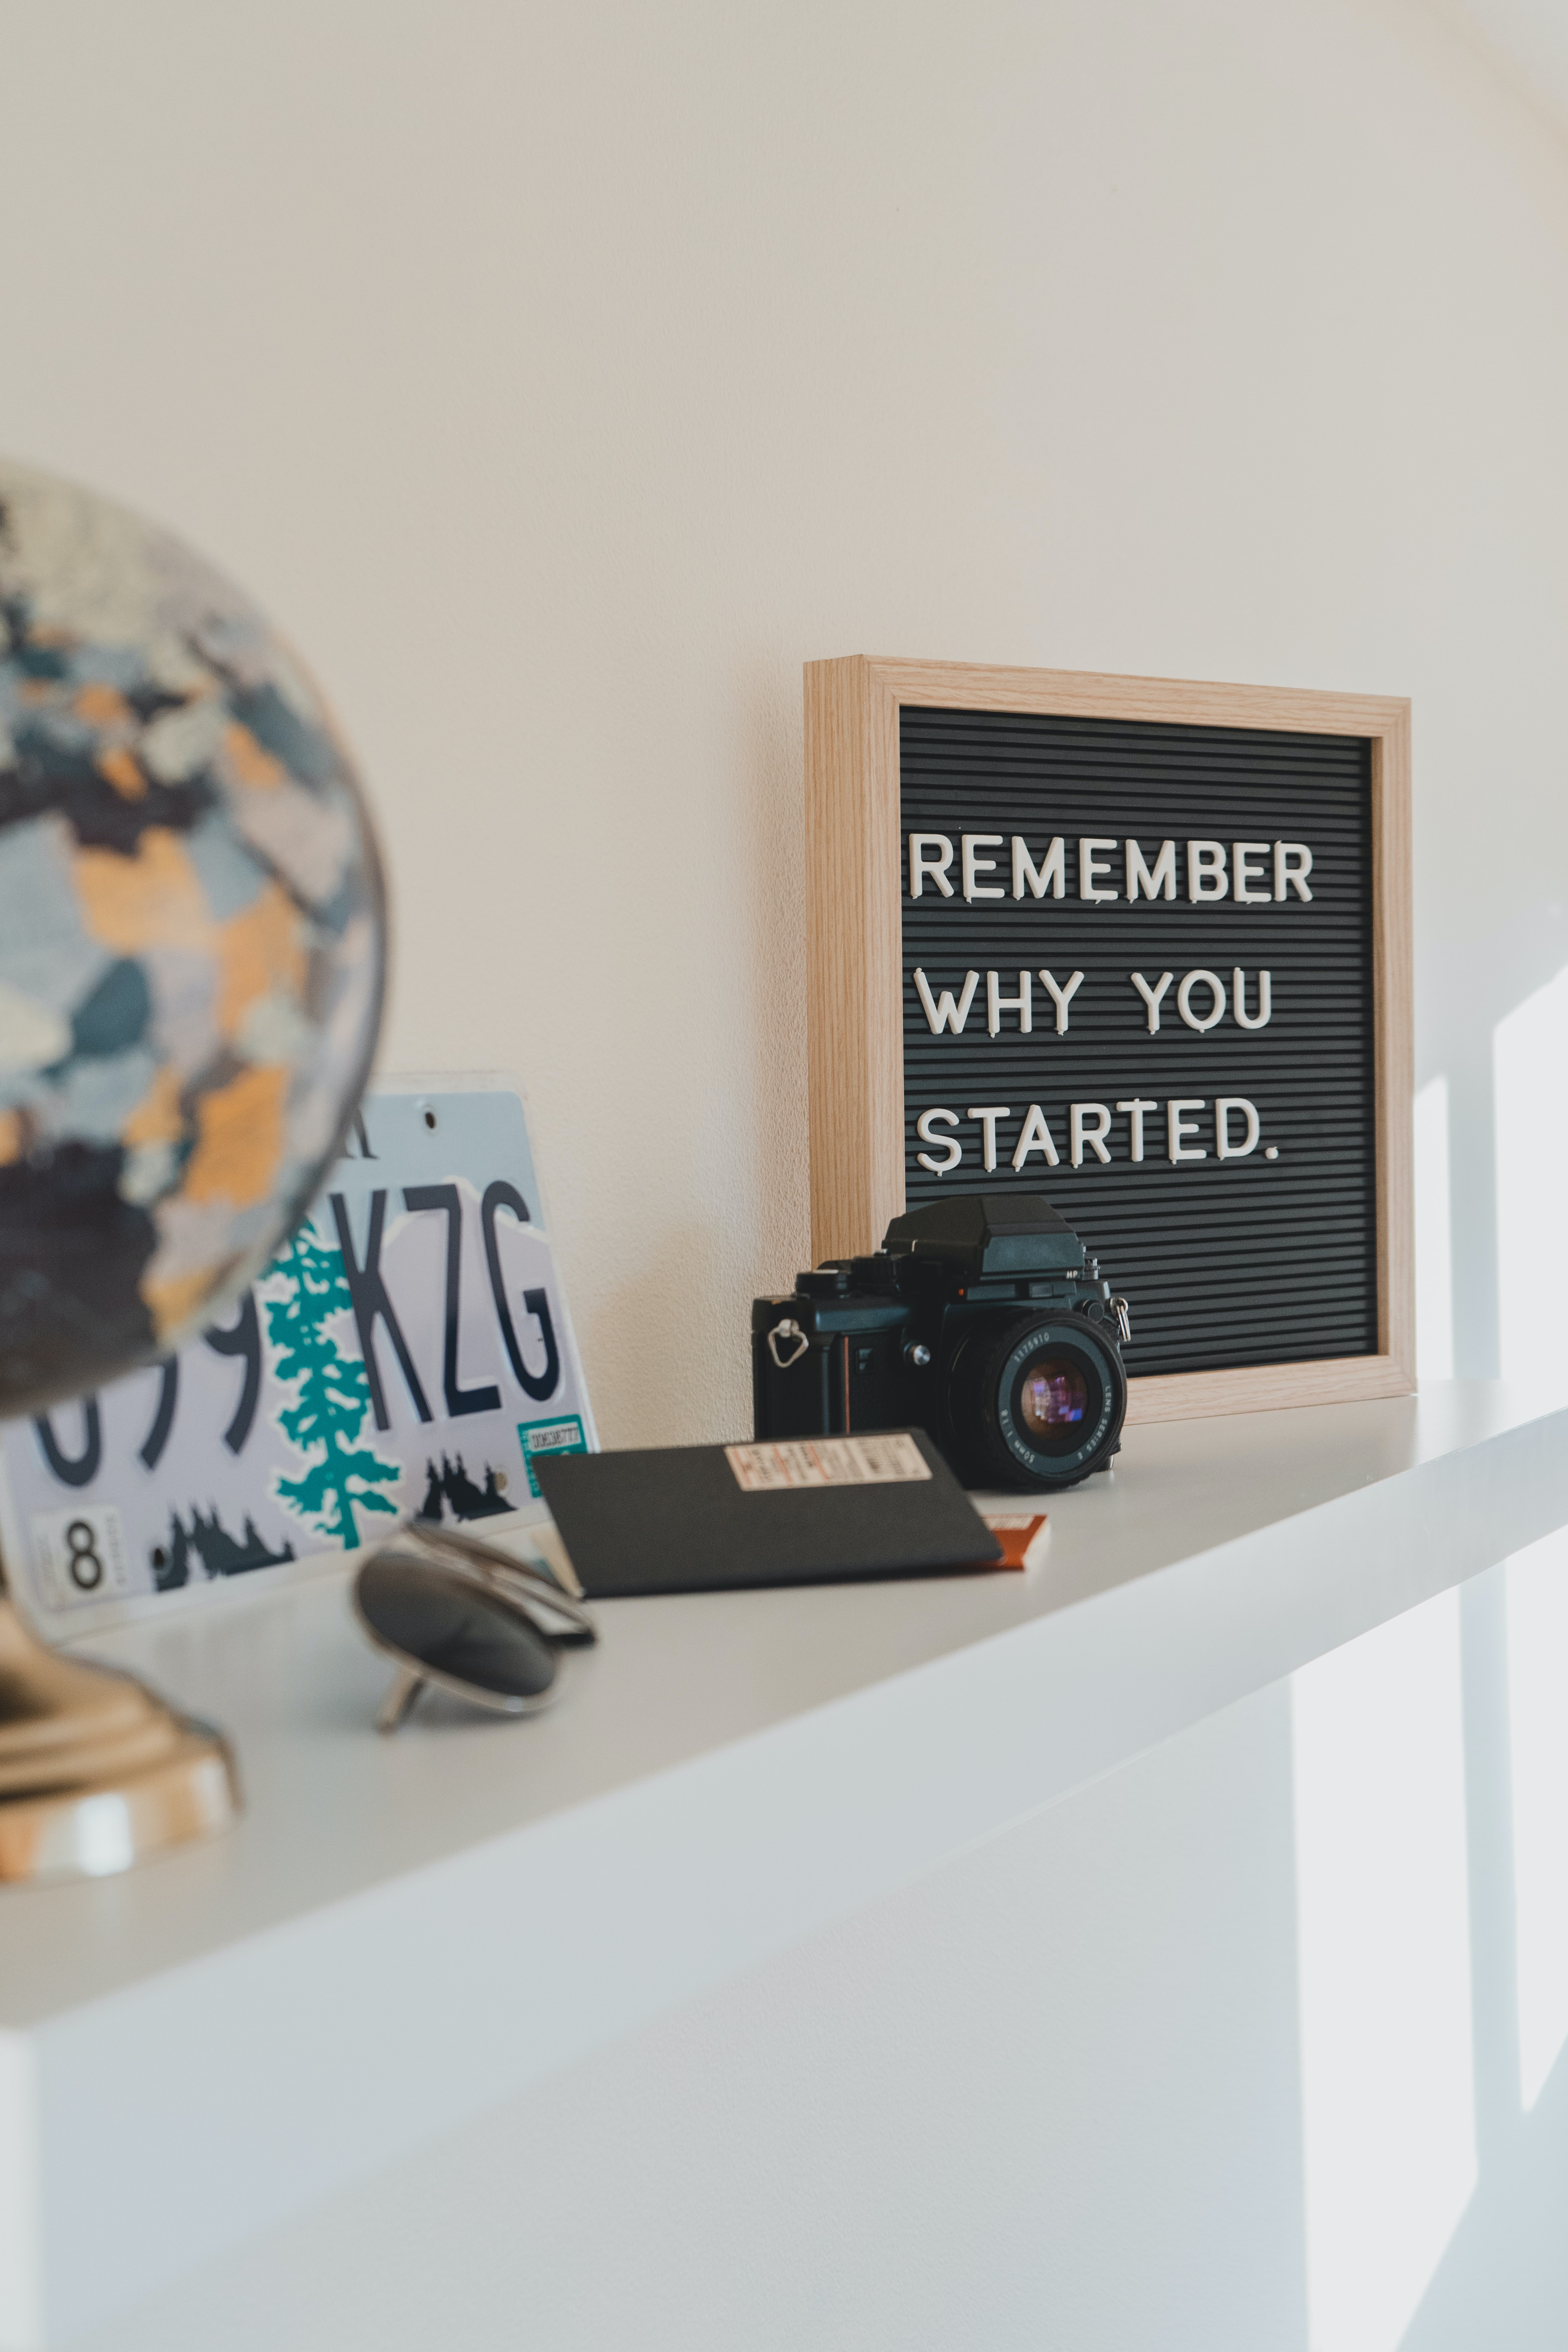 HOW TO GET MOTIVATED (AND STAYMOTIVATED)